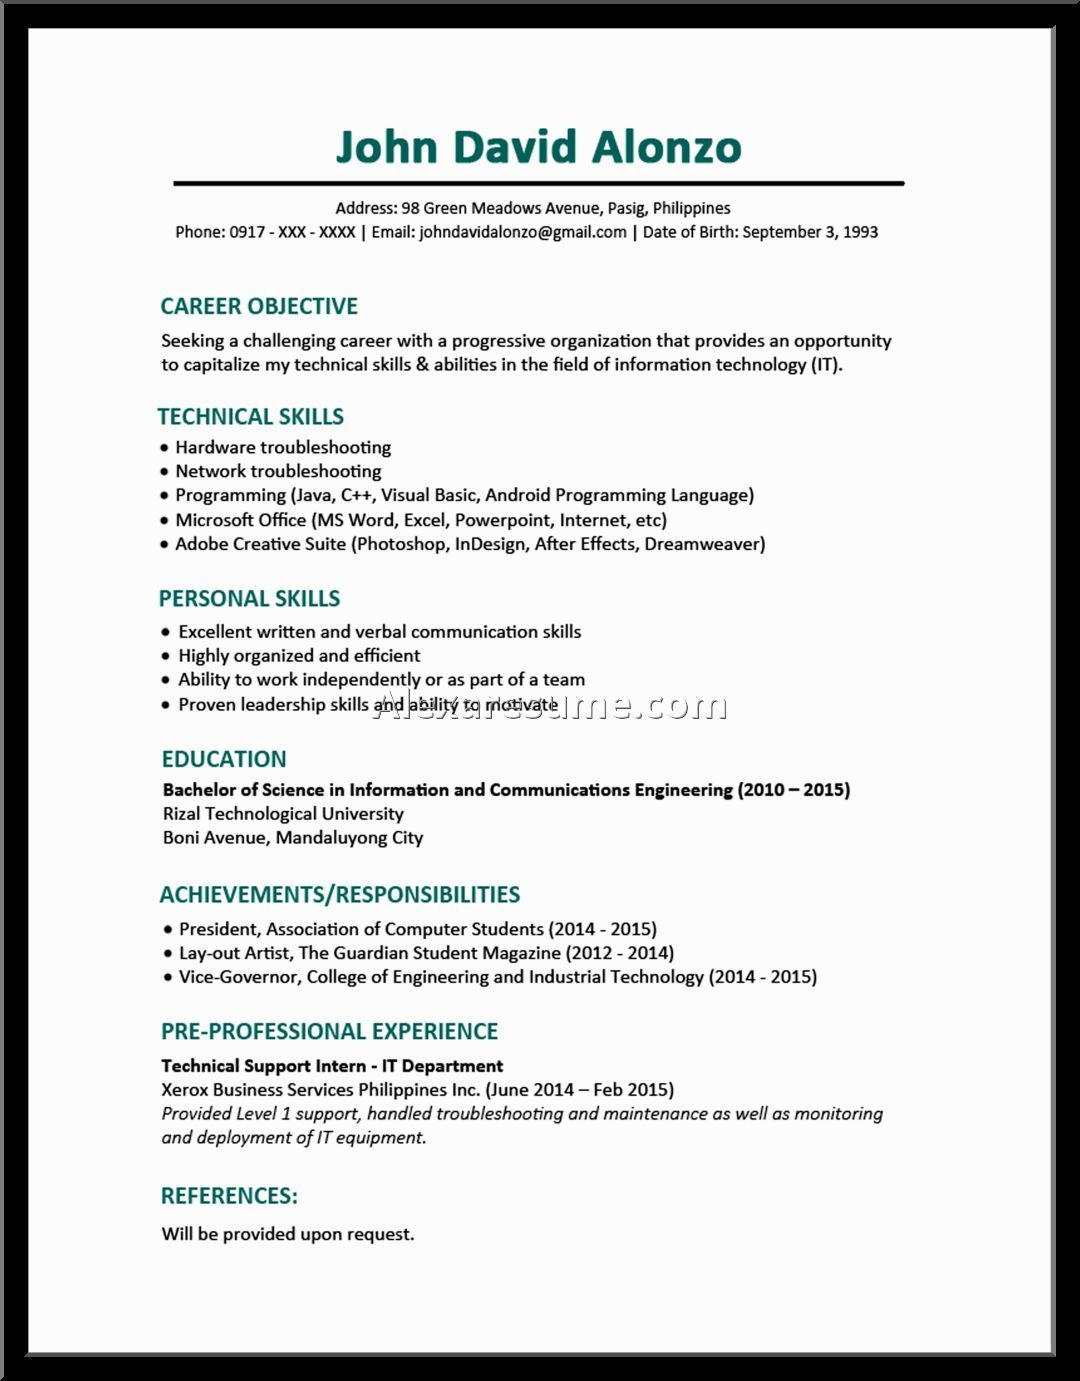 best curriculum vitae for fresh graduate good resume objective examples retail sales - Fresh Graduate Resume Sample